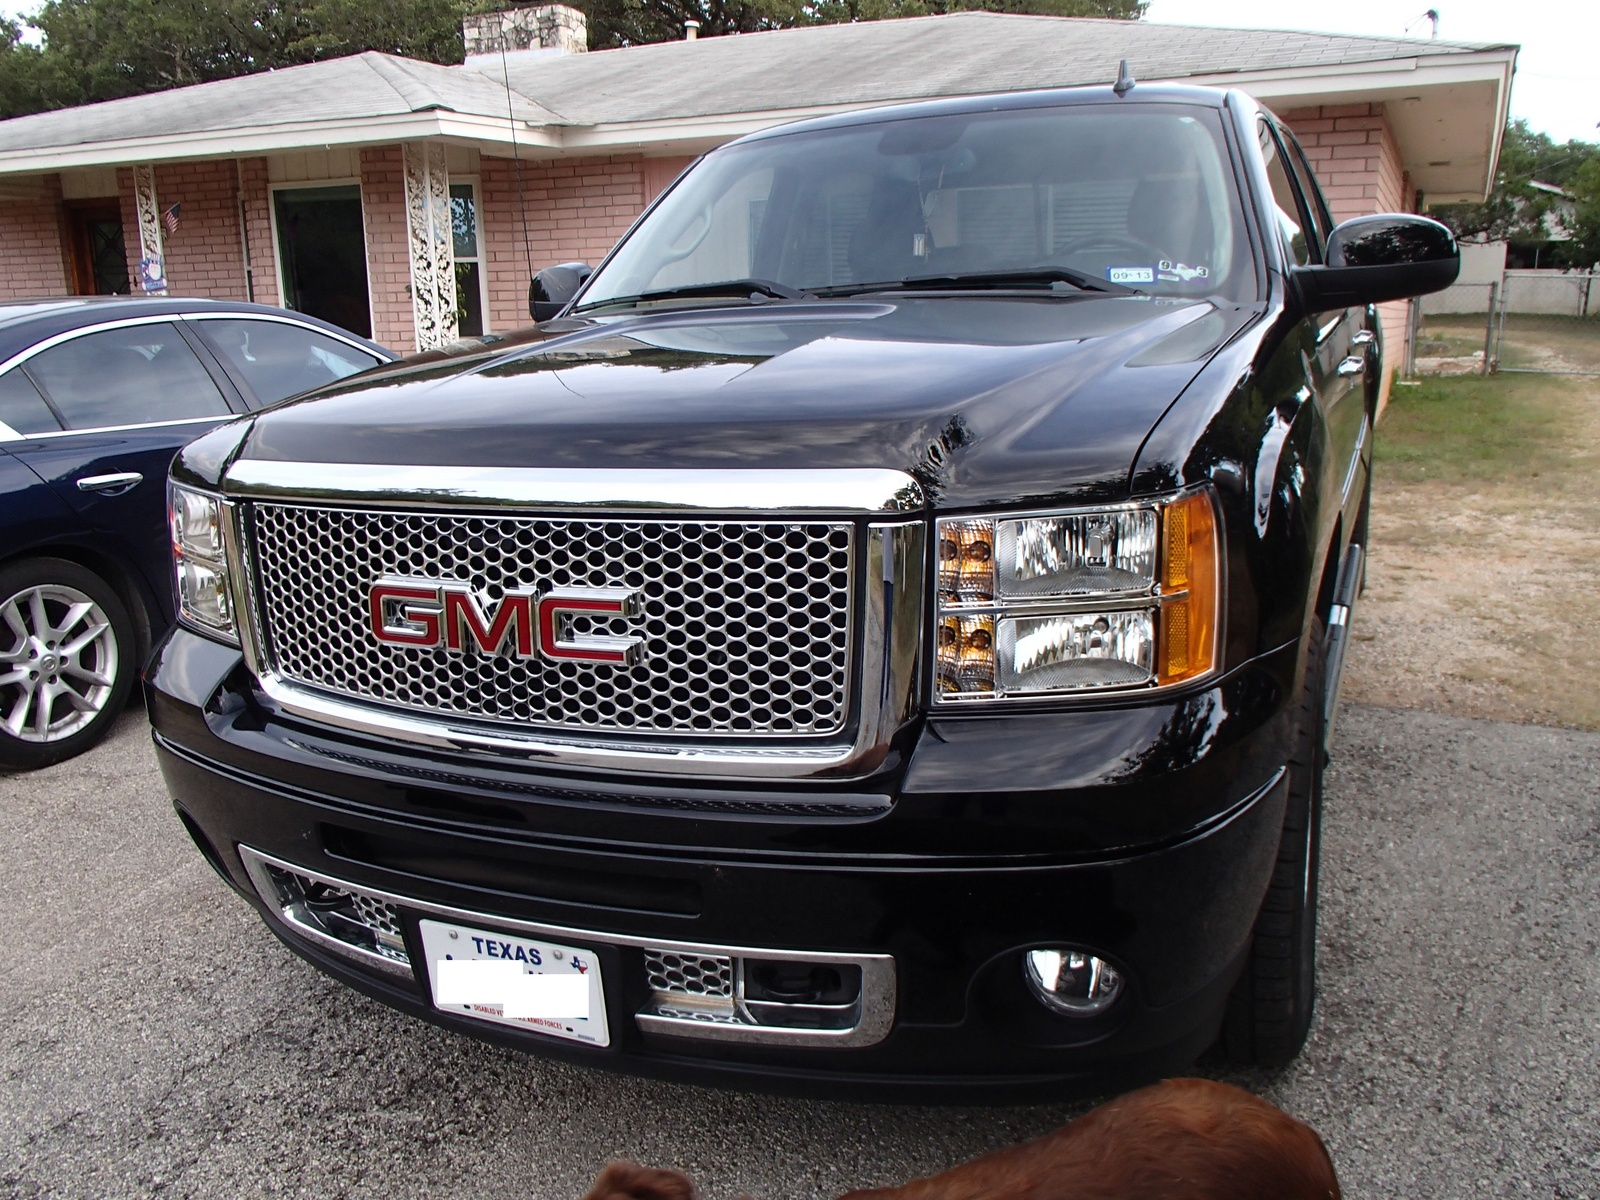 2012 gmc sierra 1500 denali pictures to pin on pinterest pinsdaddy. Black Bedroom Furniture Sets. Home Design Ideas